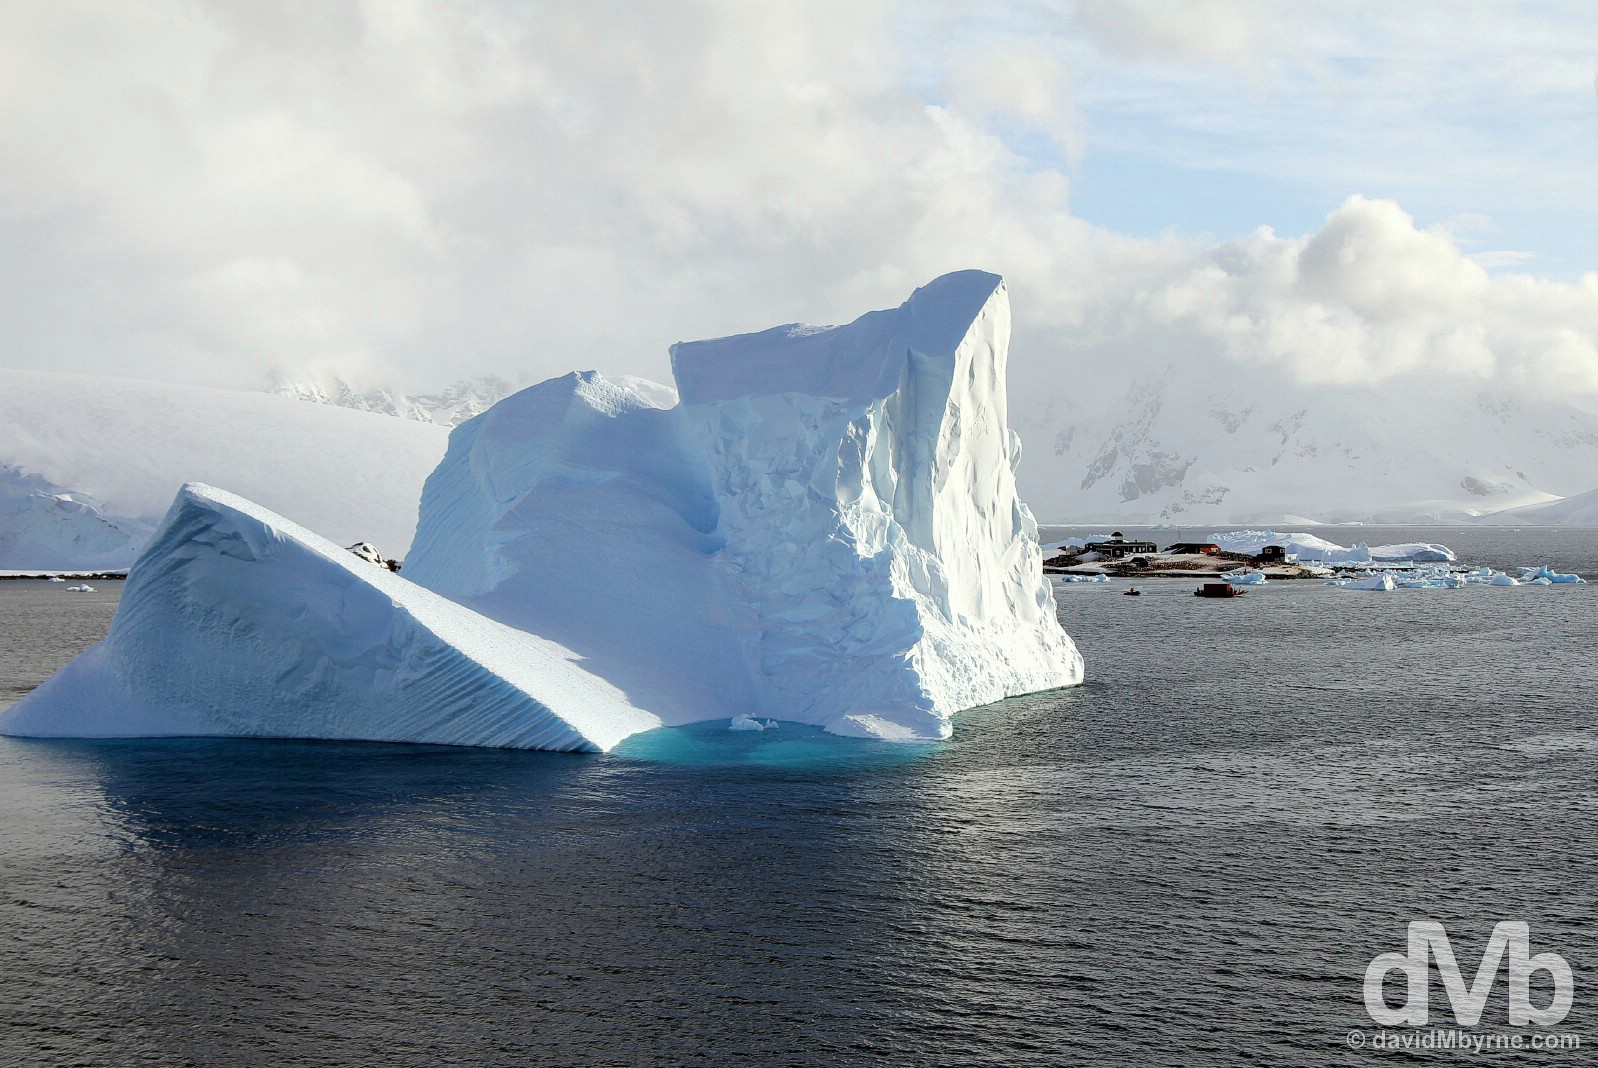 An Iceberg towering over the nearby Chilian González Videla Base in Antarctica. December 1, 2015.